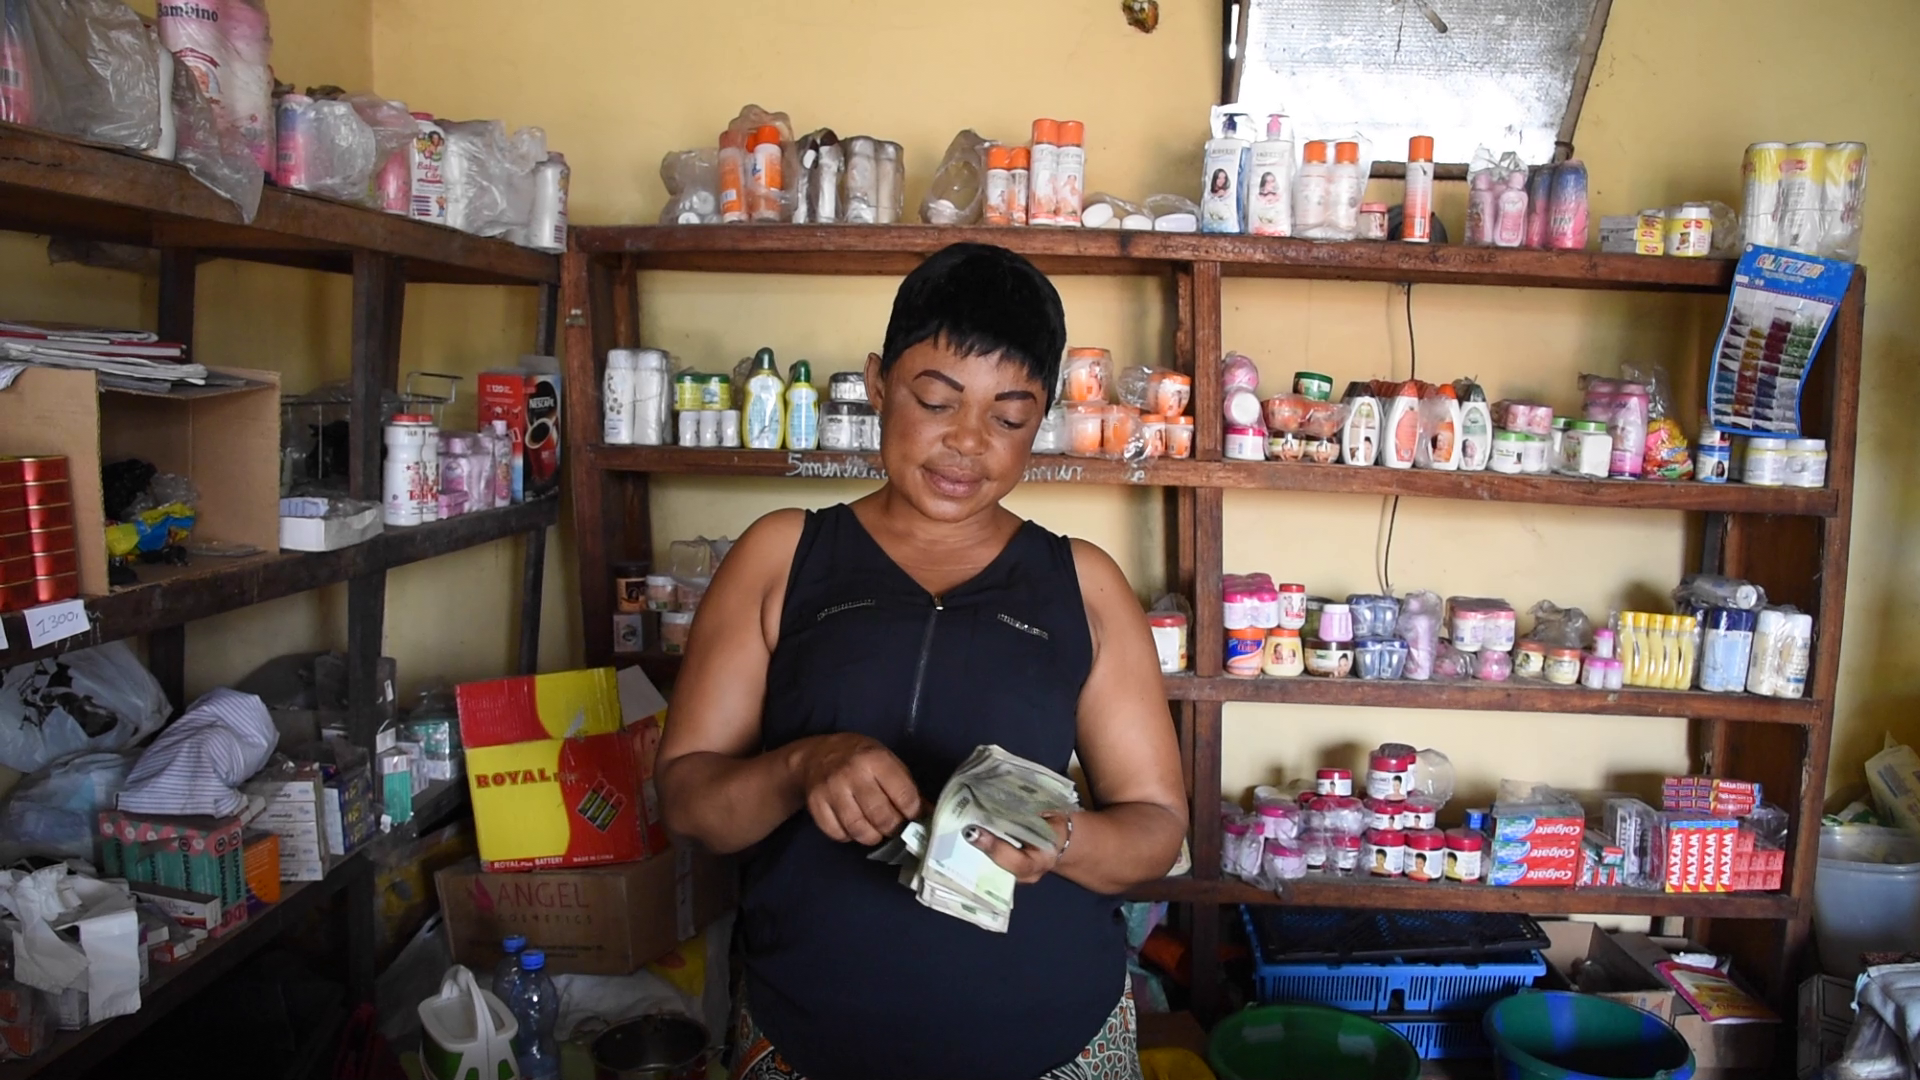 Innocente counting money in her shop